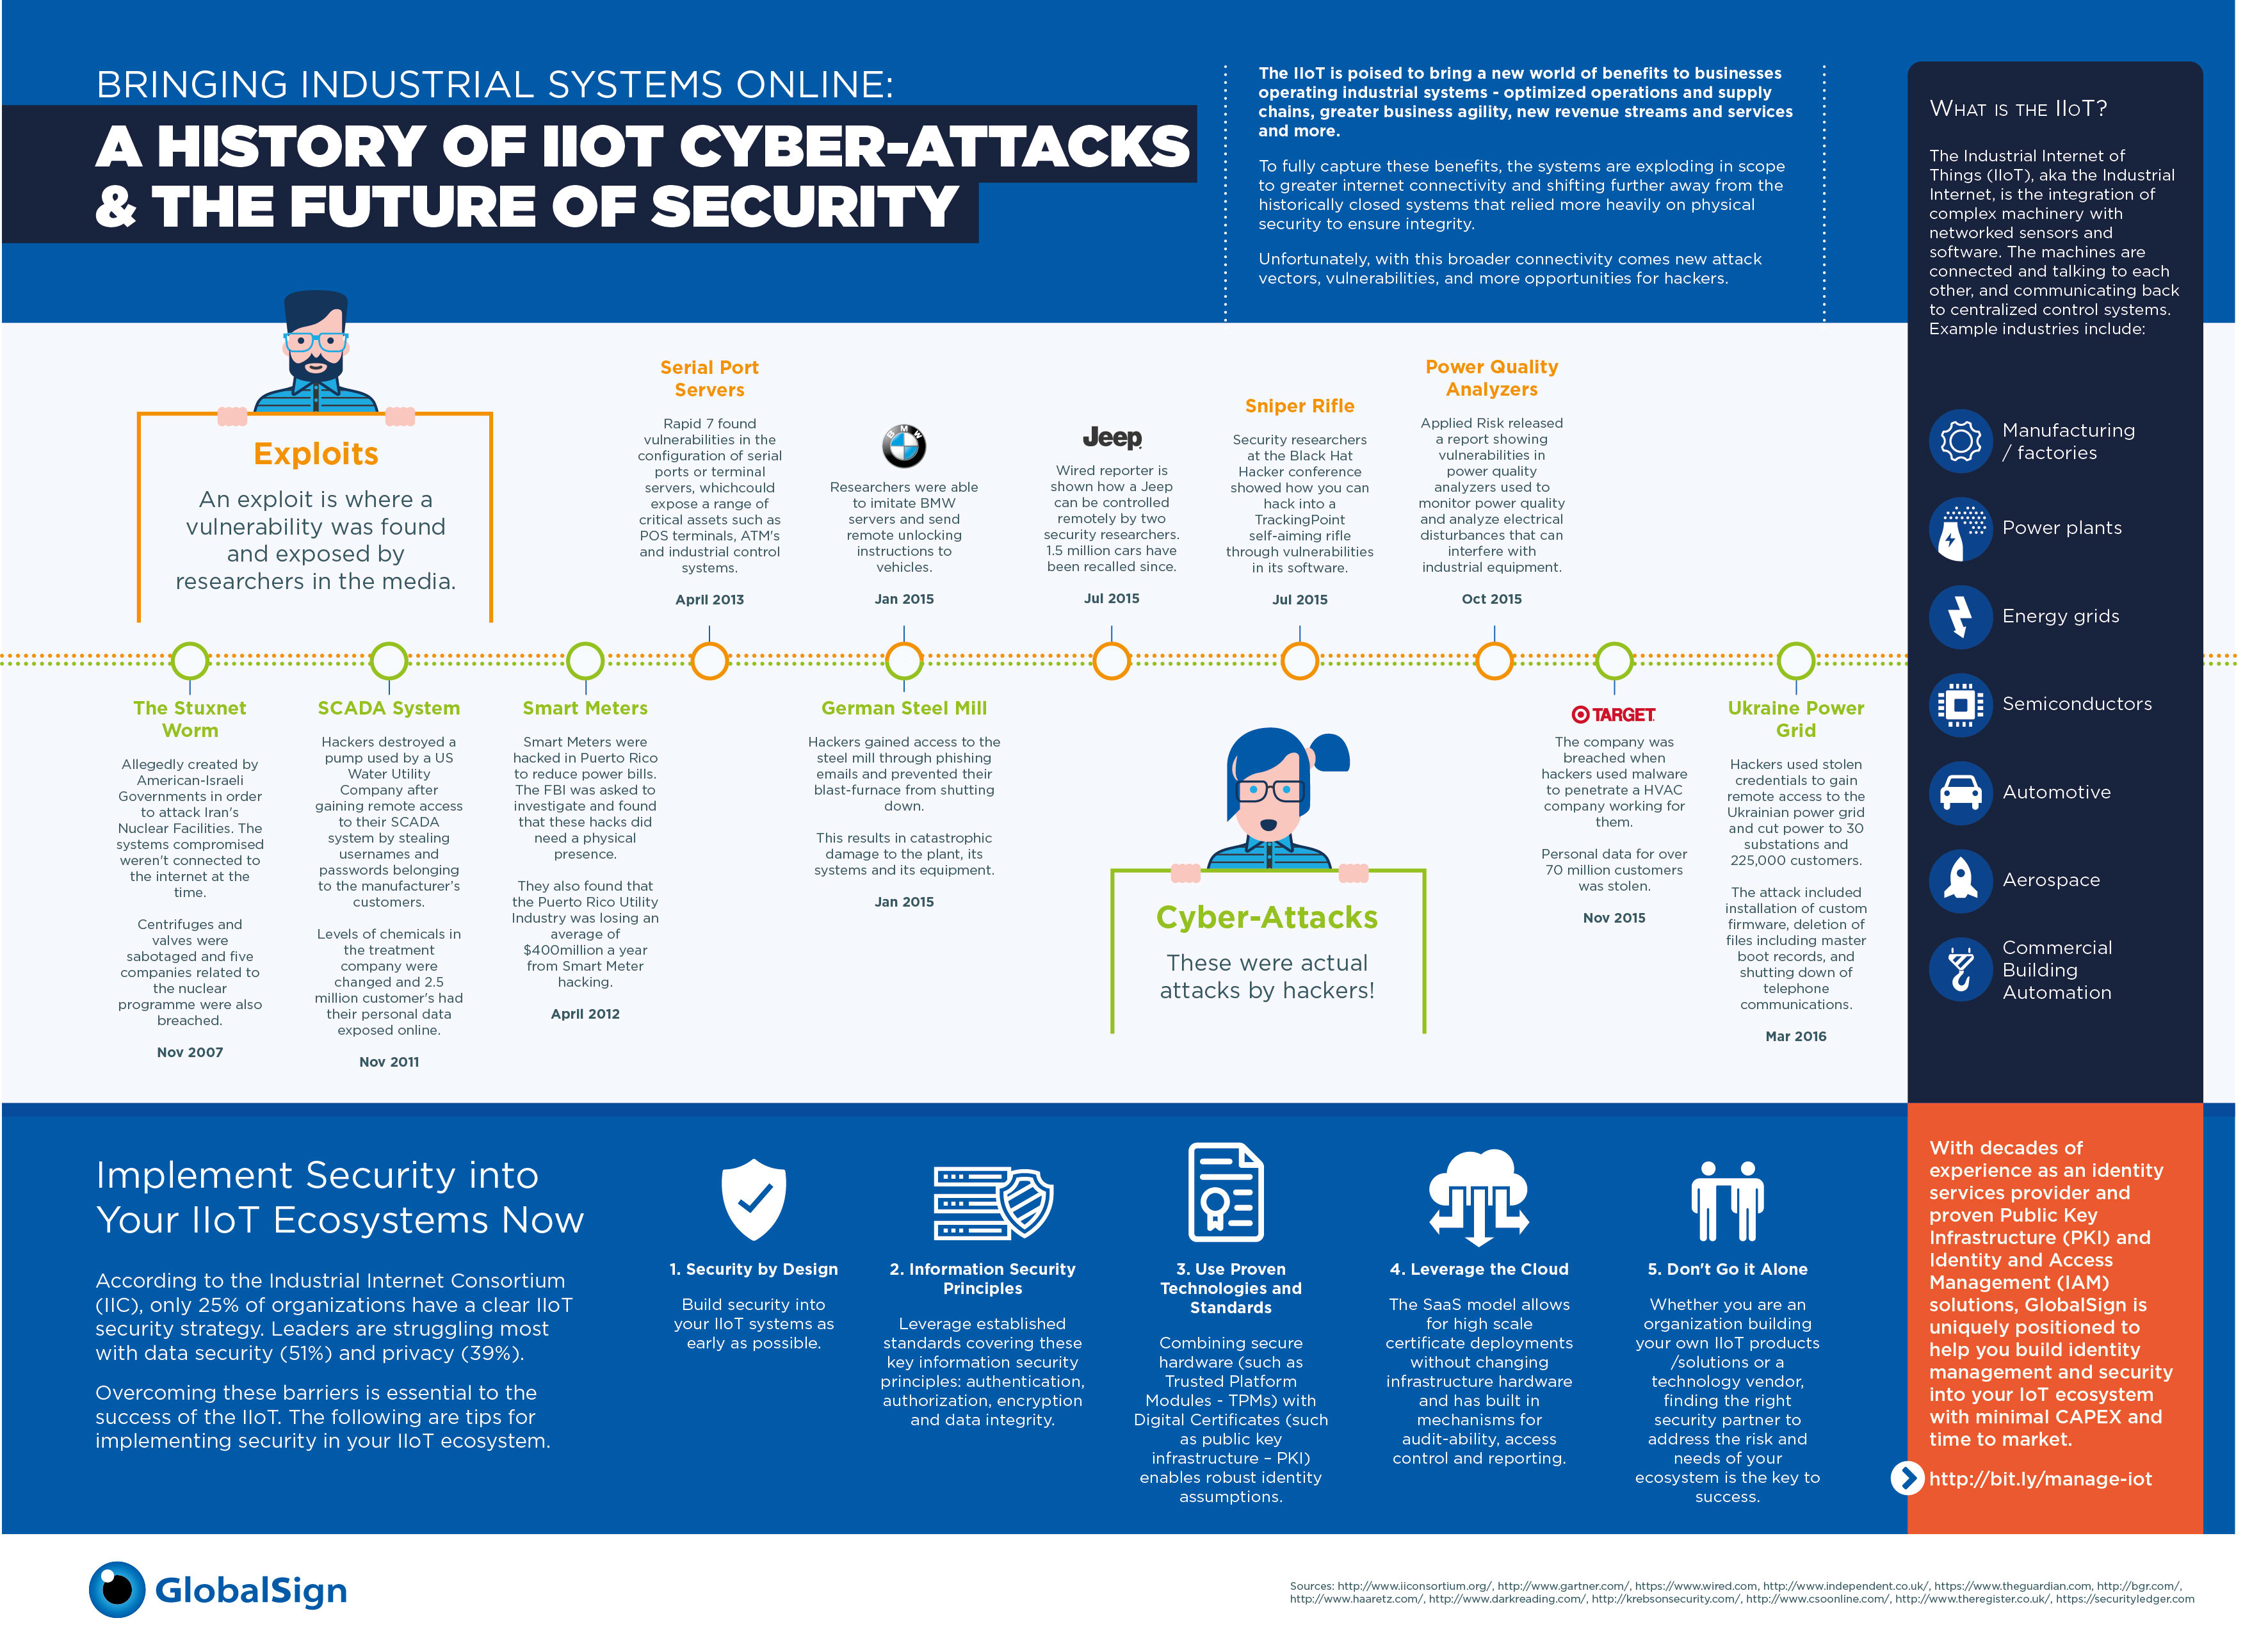 A history of IIoT cyber-attacks and the future of security. (Image courtesy of GlobalSign.)